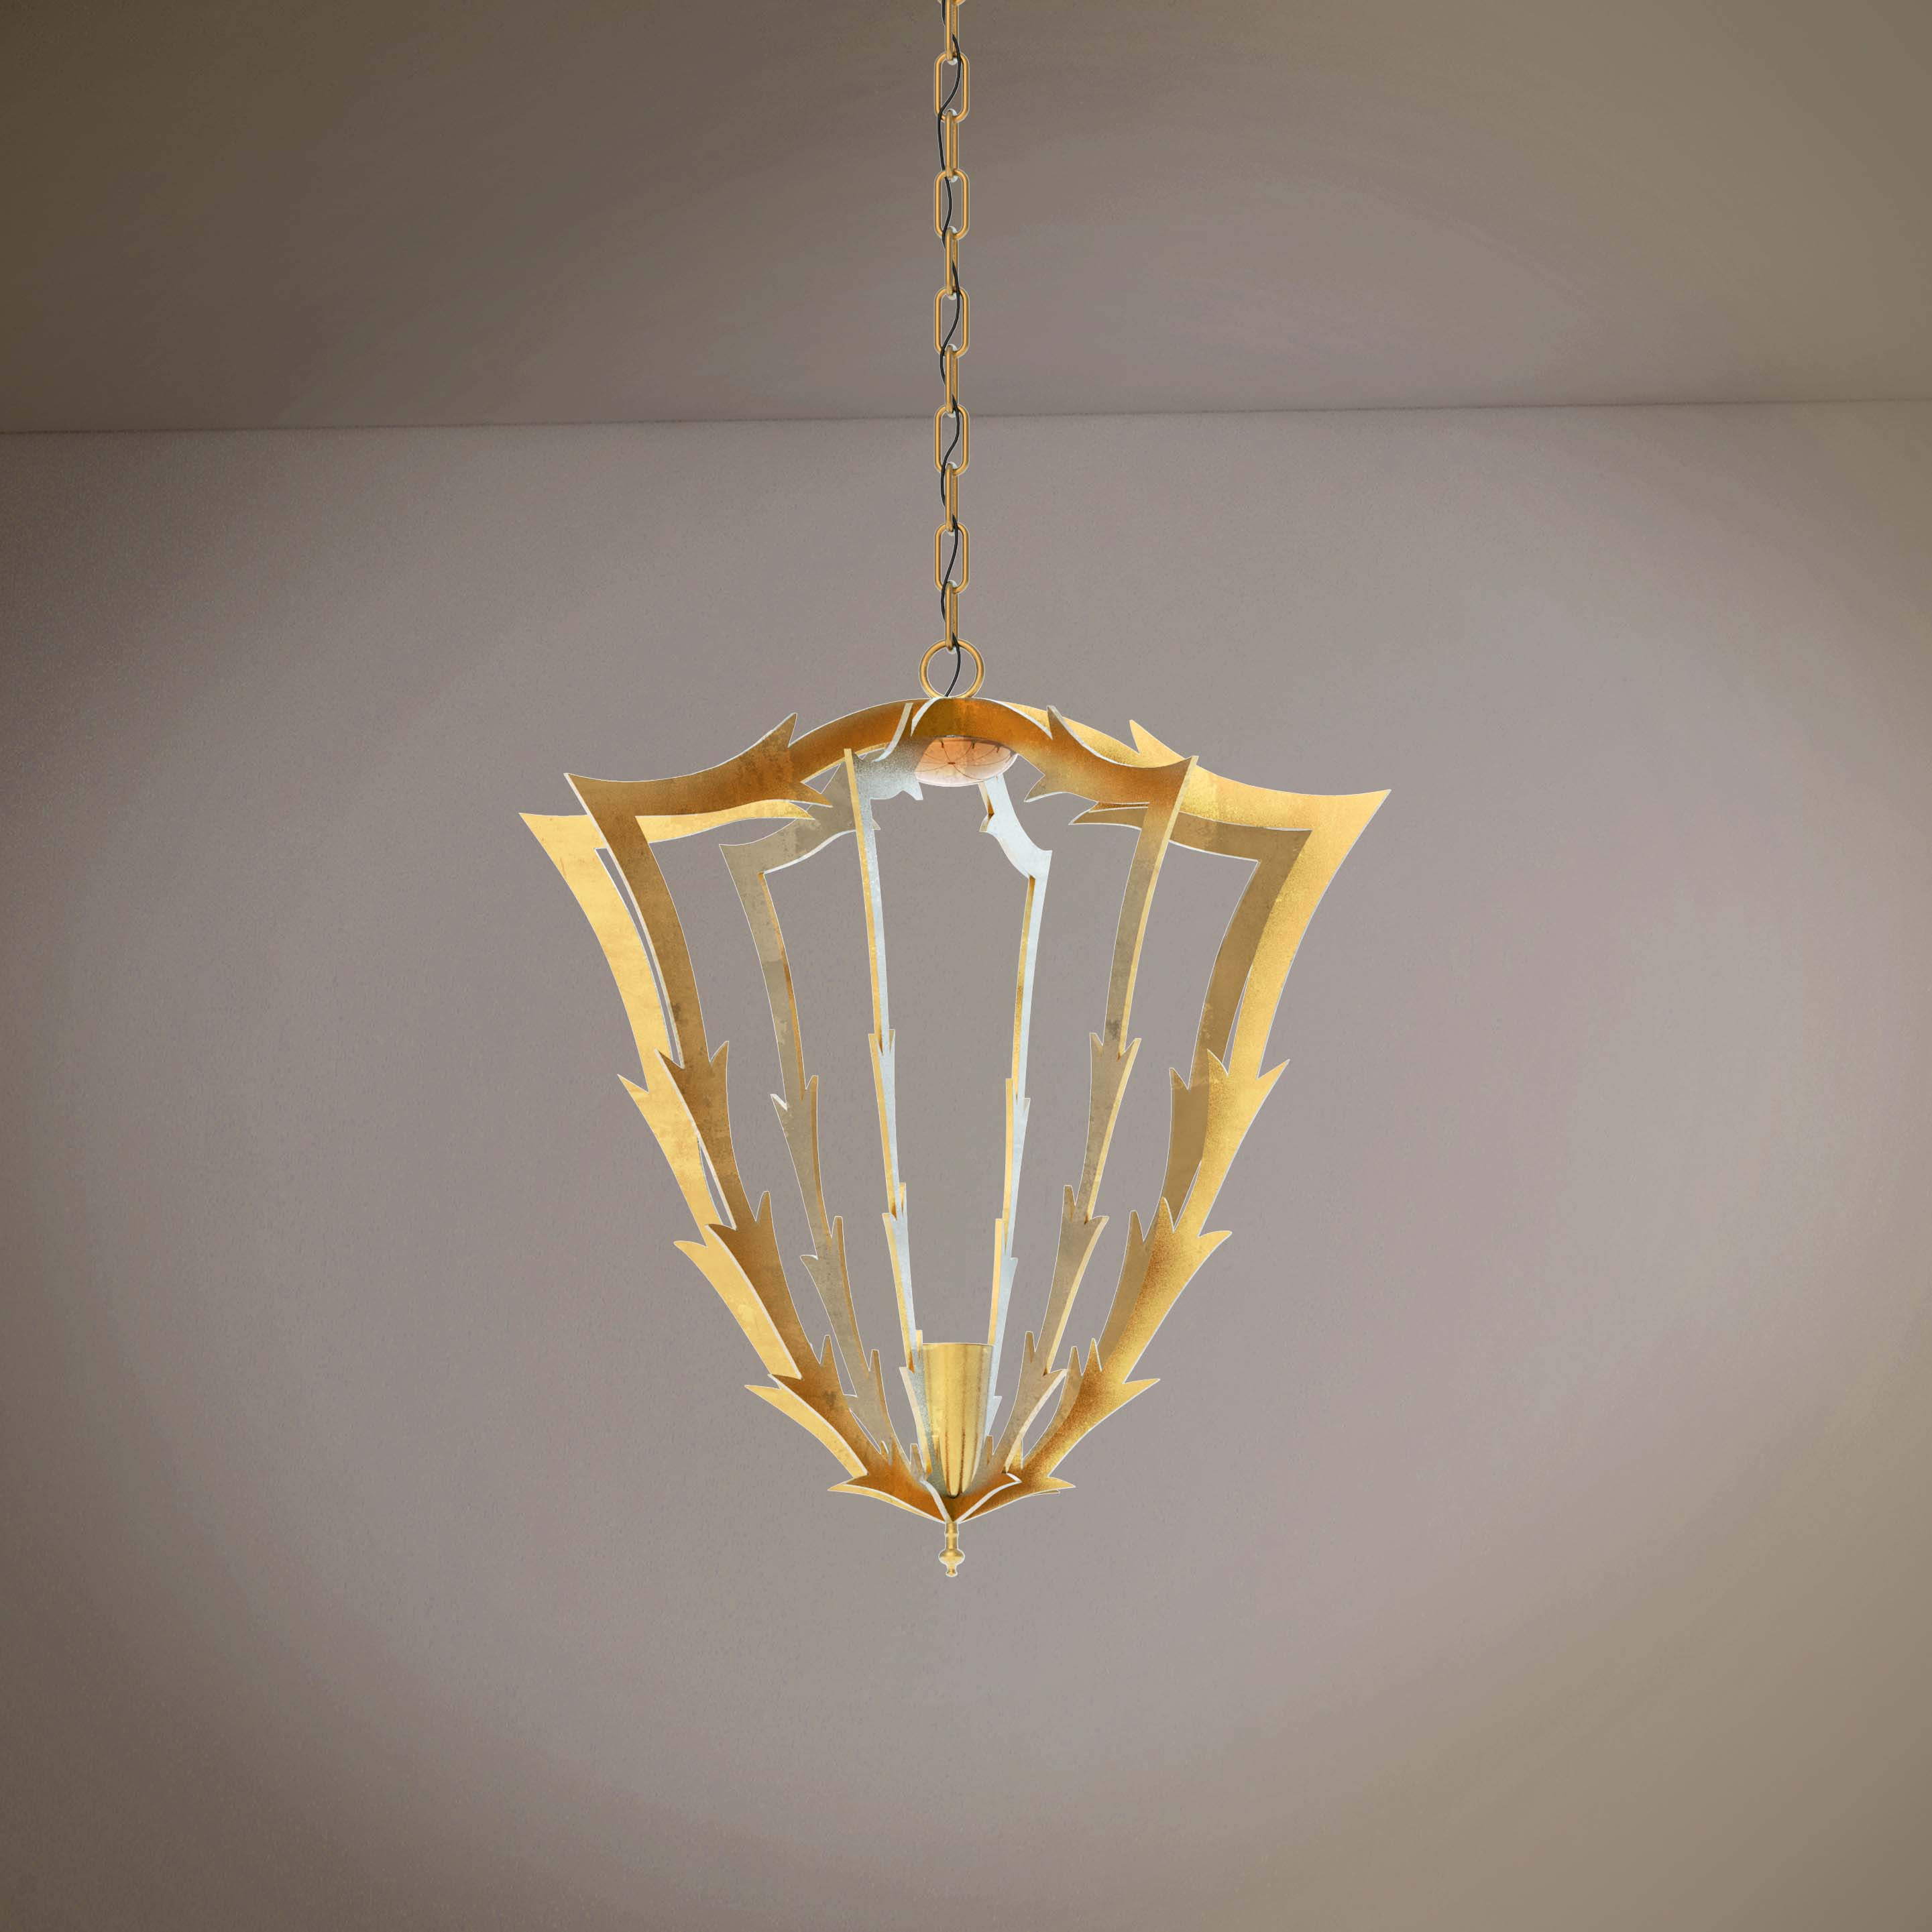 Golden Luxury Lightning Ornaments  Chandelier - 3D Product